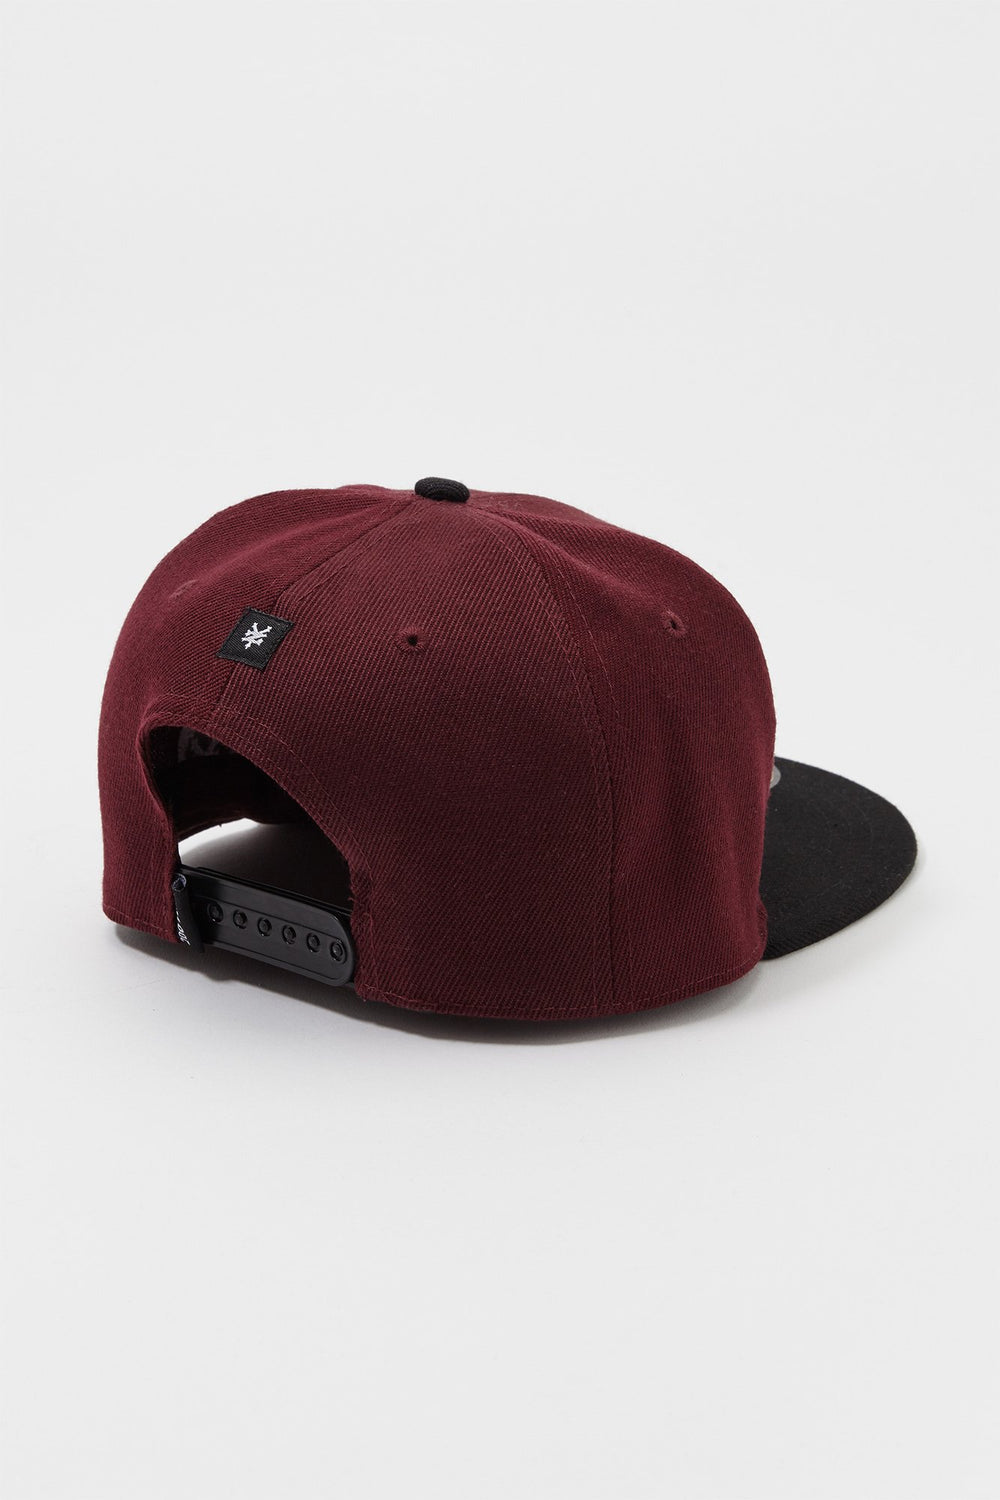 Zoo York Mens Box Logo Snapback Hat Burgundy